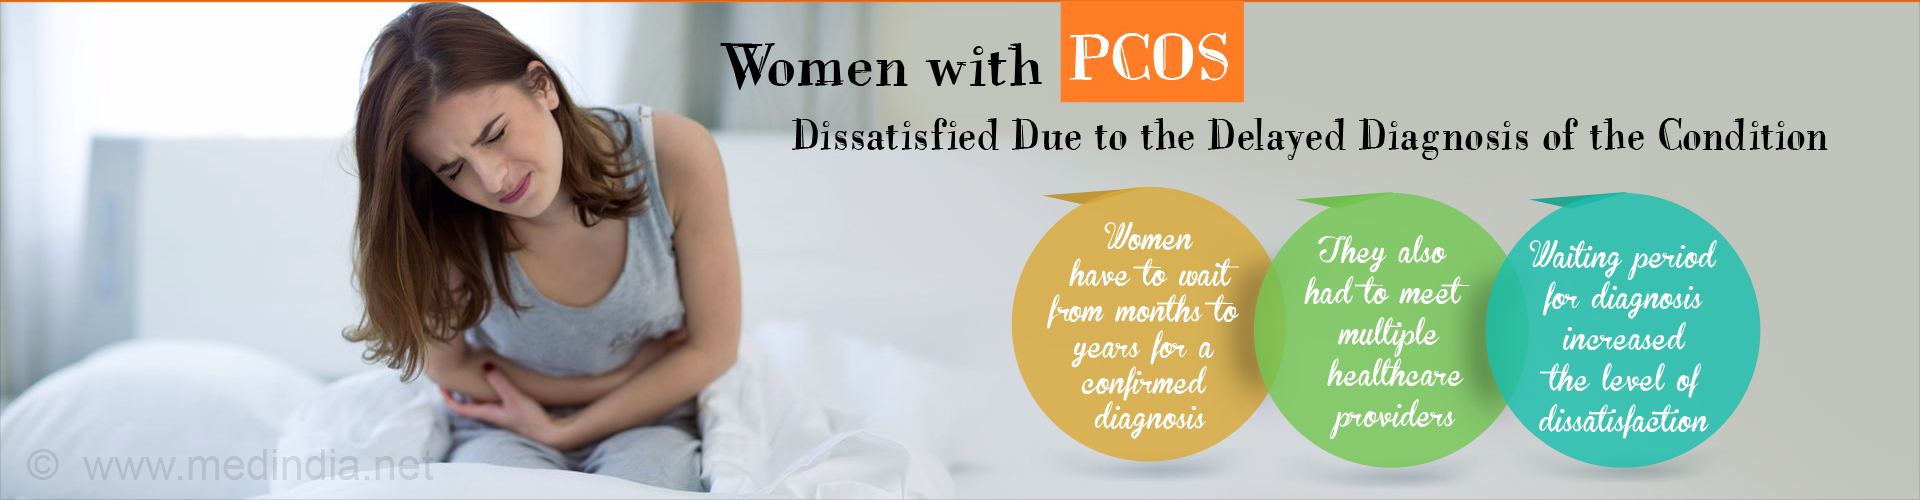 Women Unhappy With the Long Waiting Periods For Polycystic Ovarian Syndrome Diagnosis